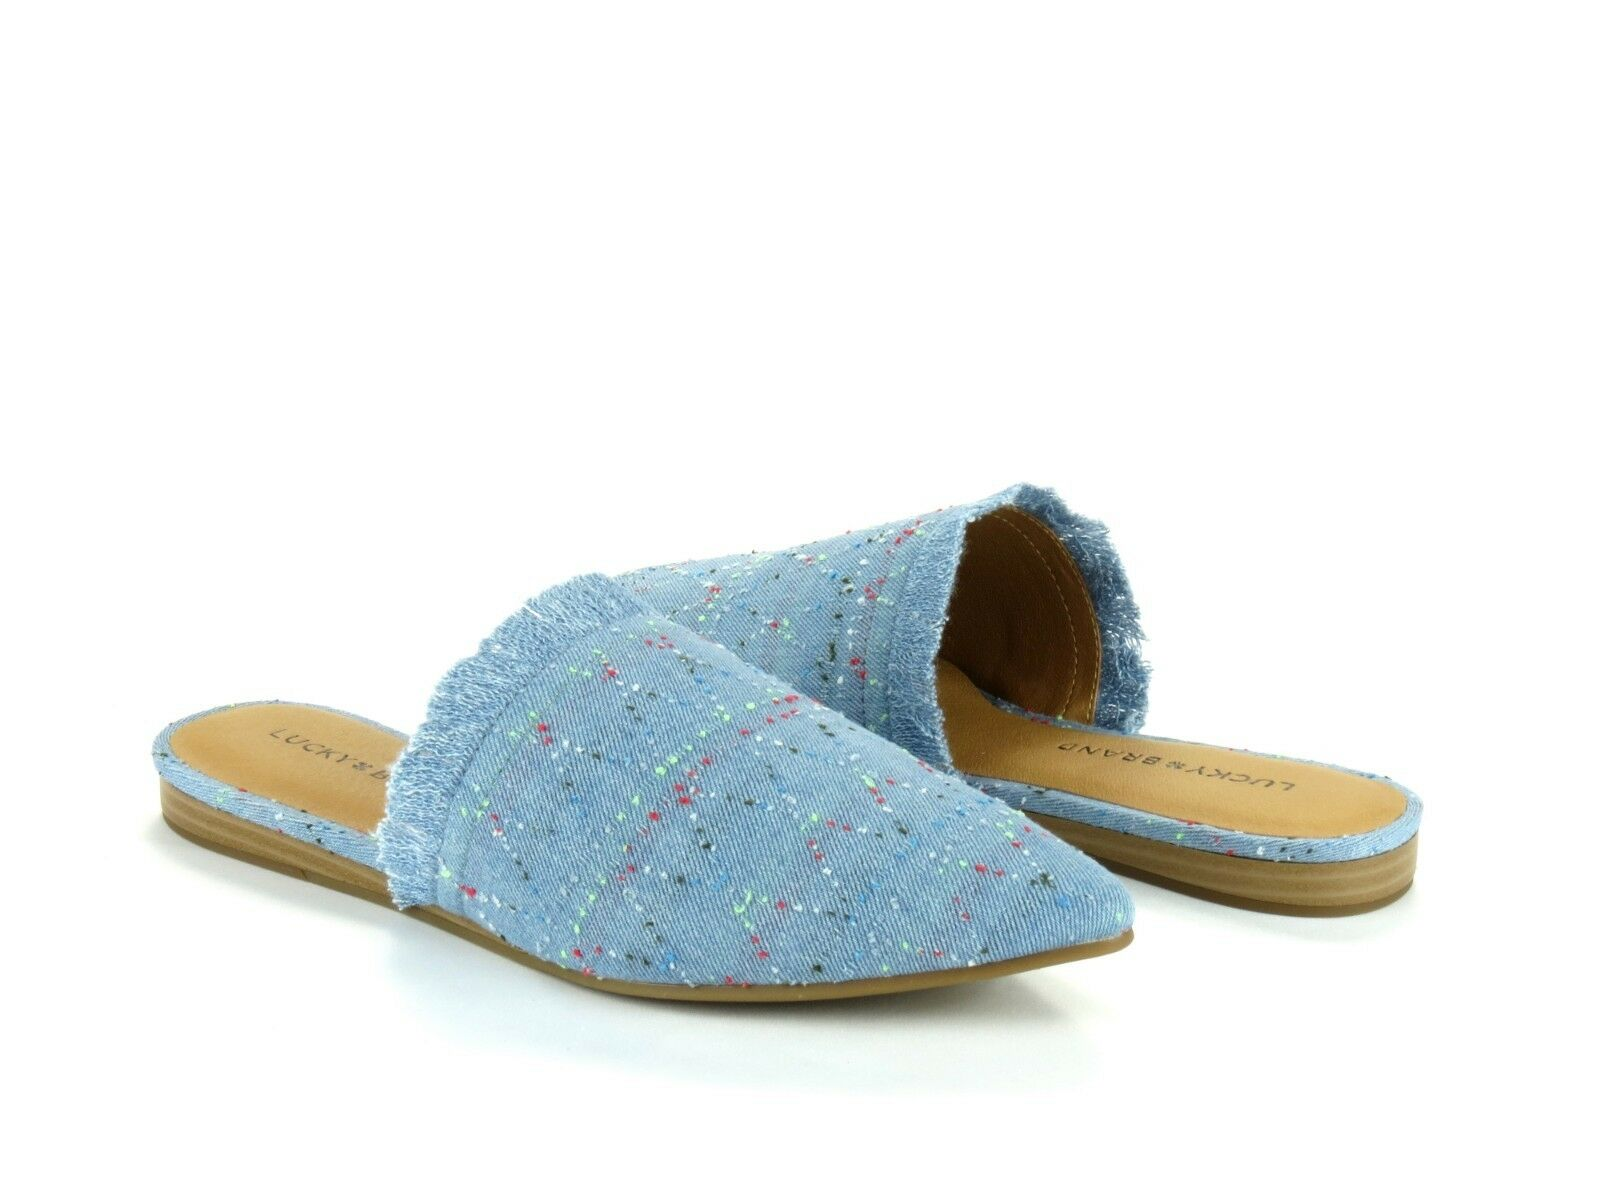 Lucky Brand Bapsee Light Blue Denim Multicolor Slide Mule Slip On Flat NEW 6.5